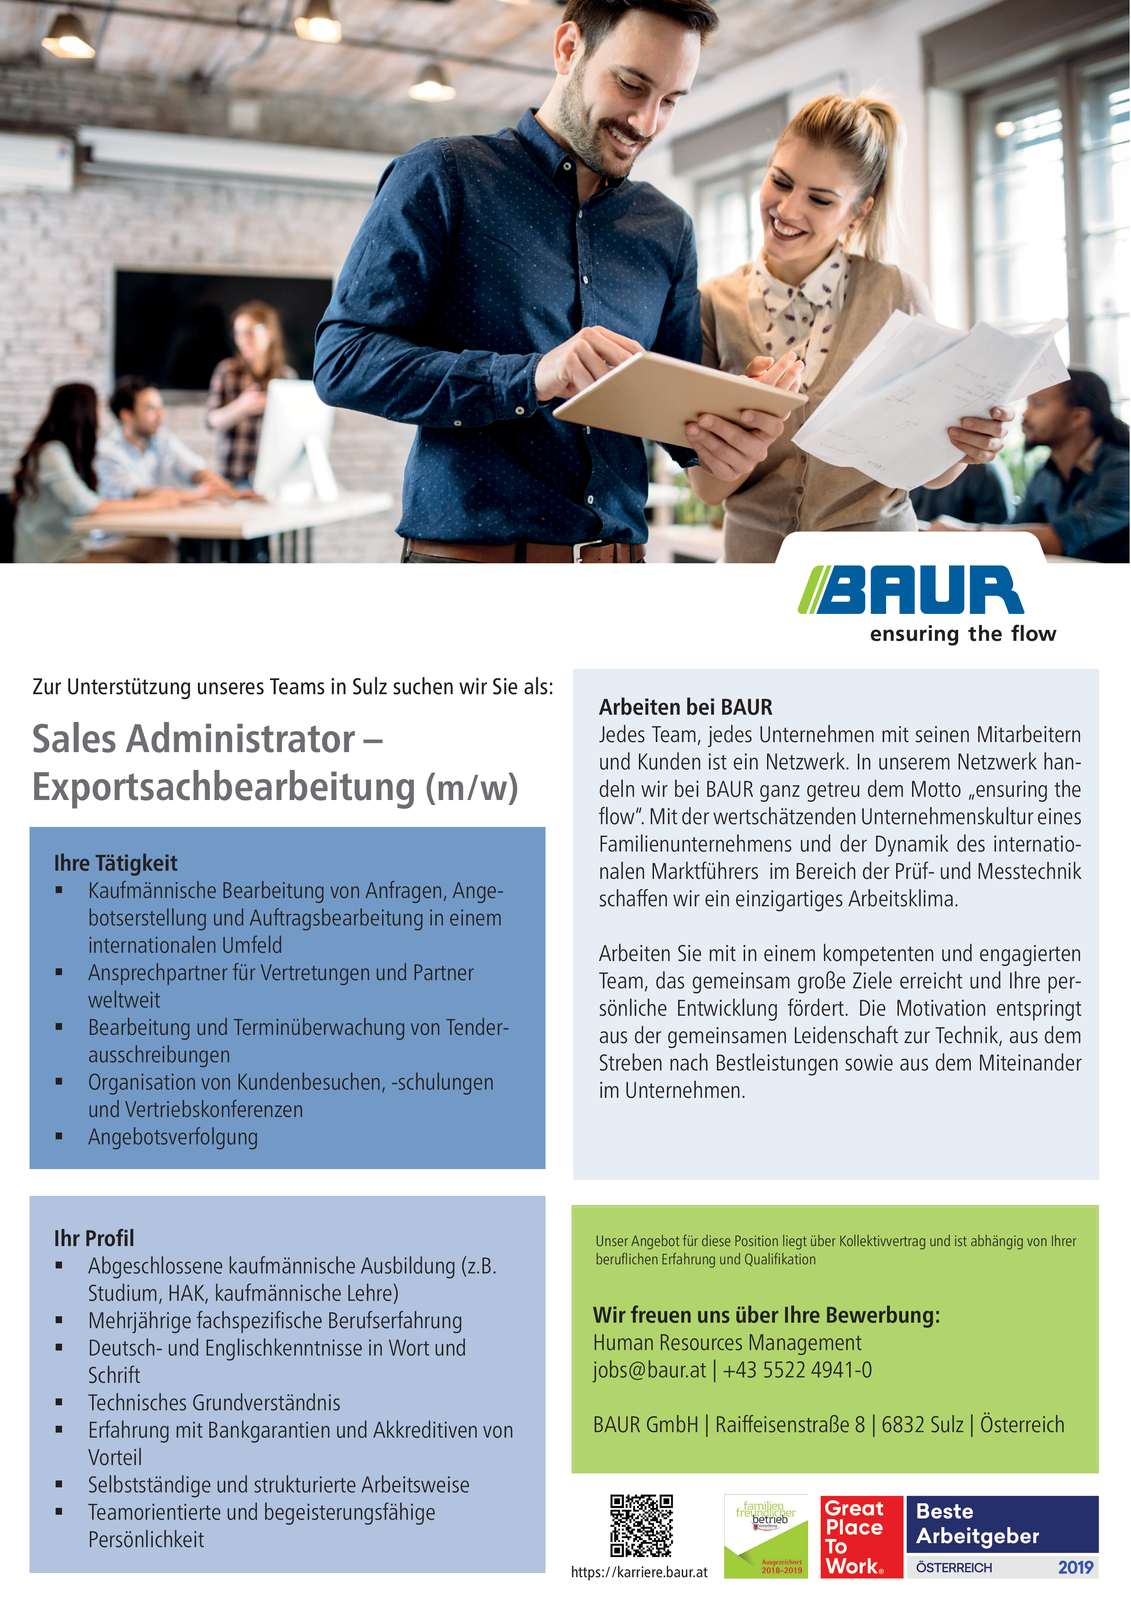 Sales Administrator - Exportsachbearbeitung (m/w)